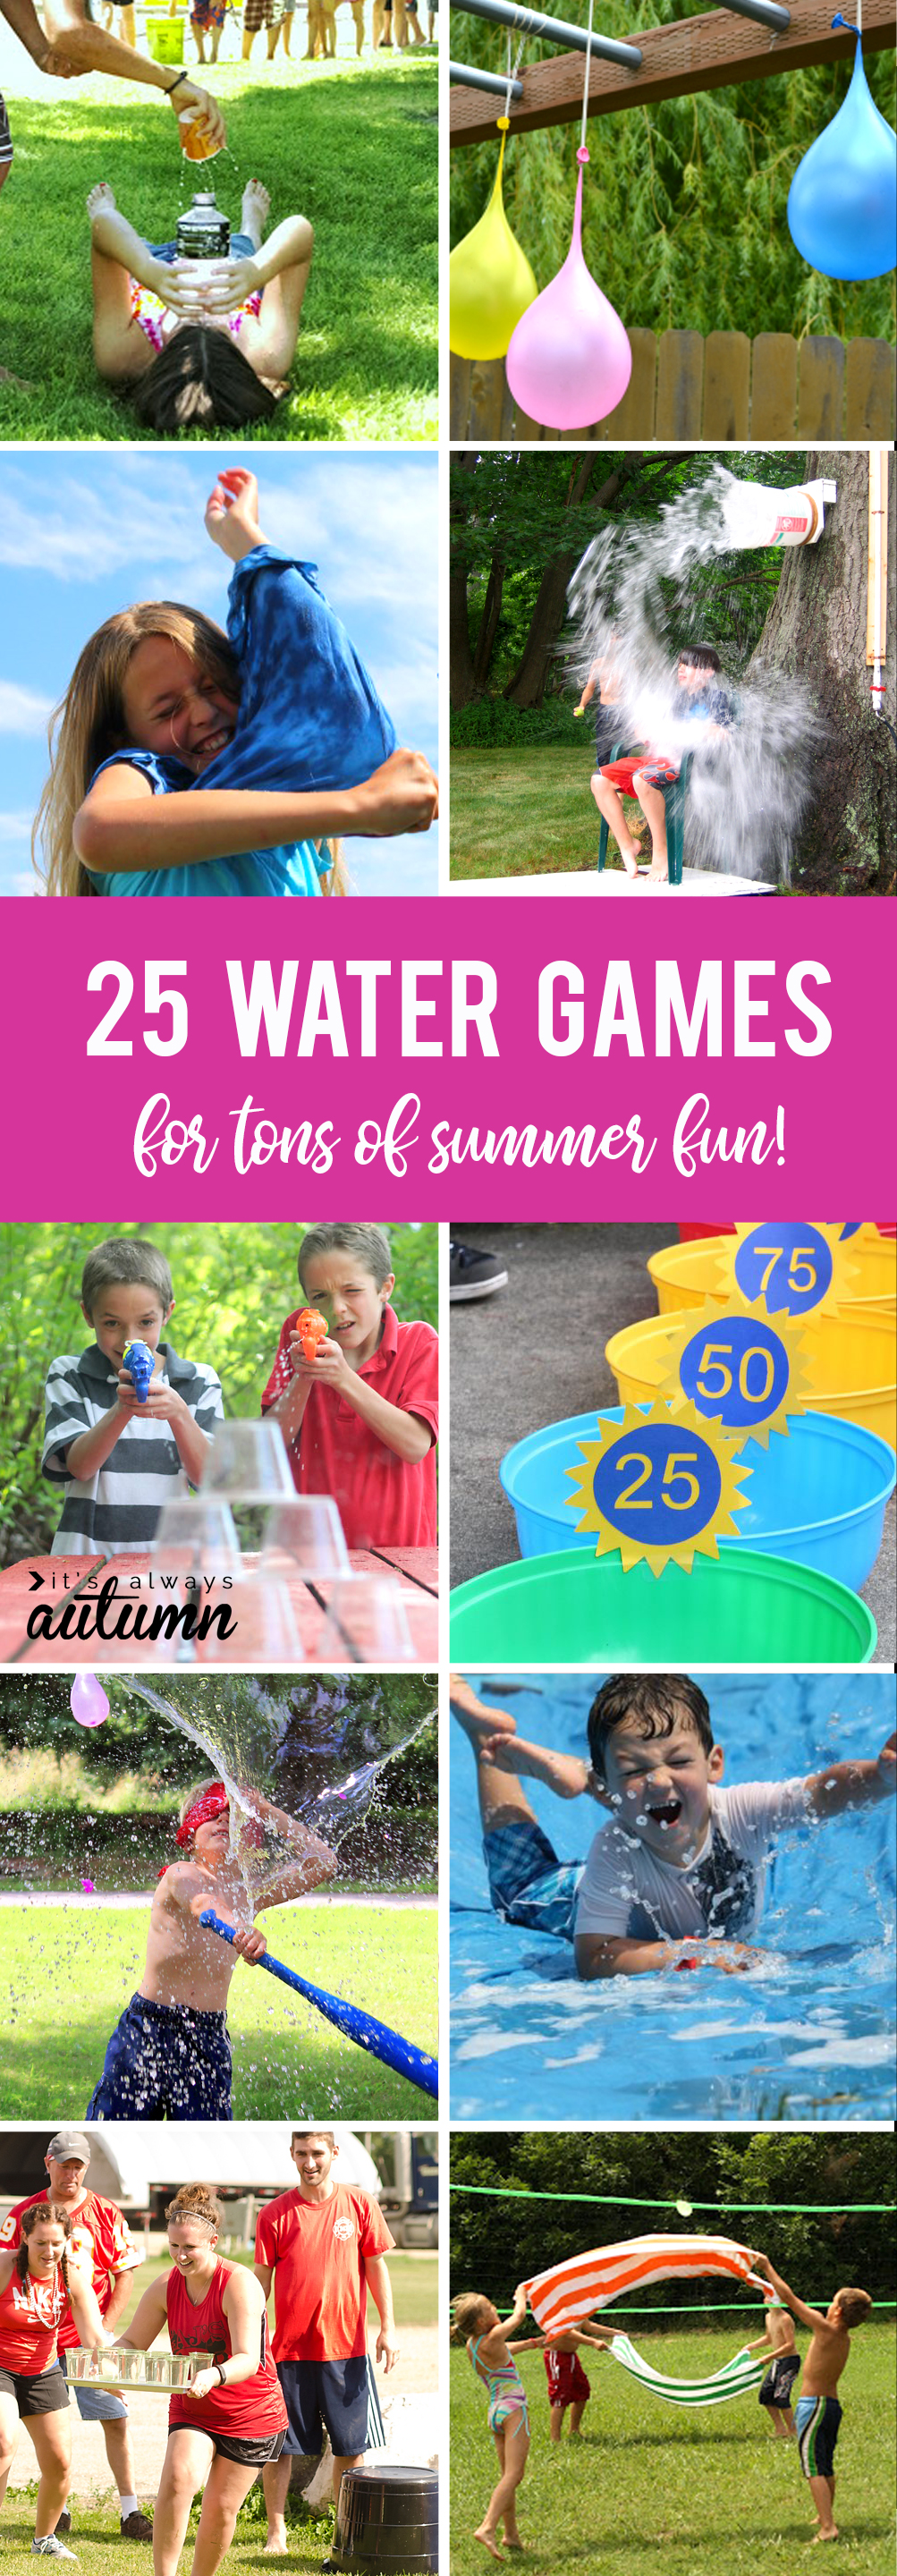 Collage showing various different water games